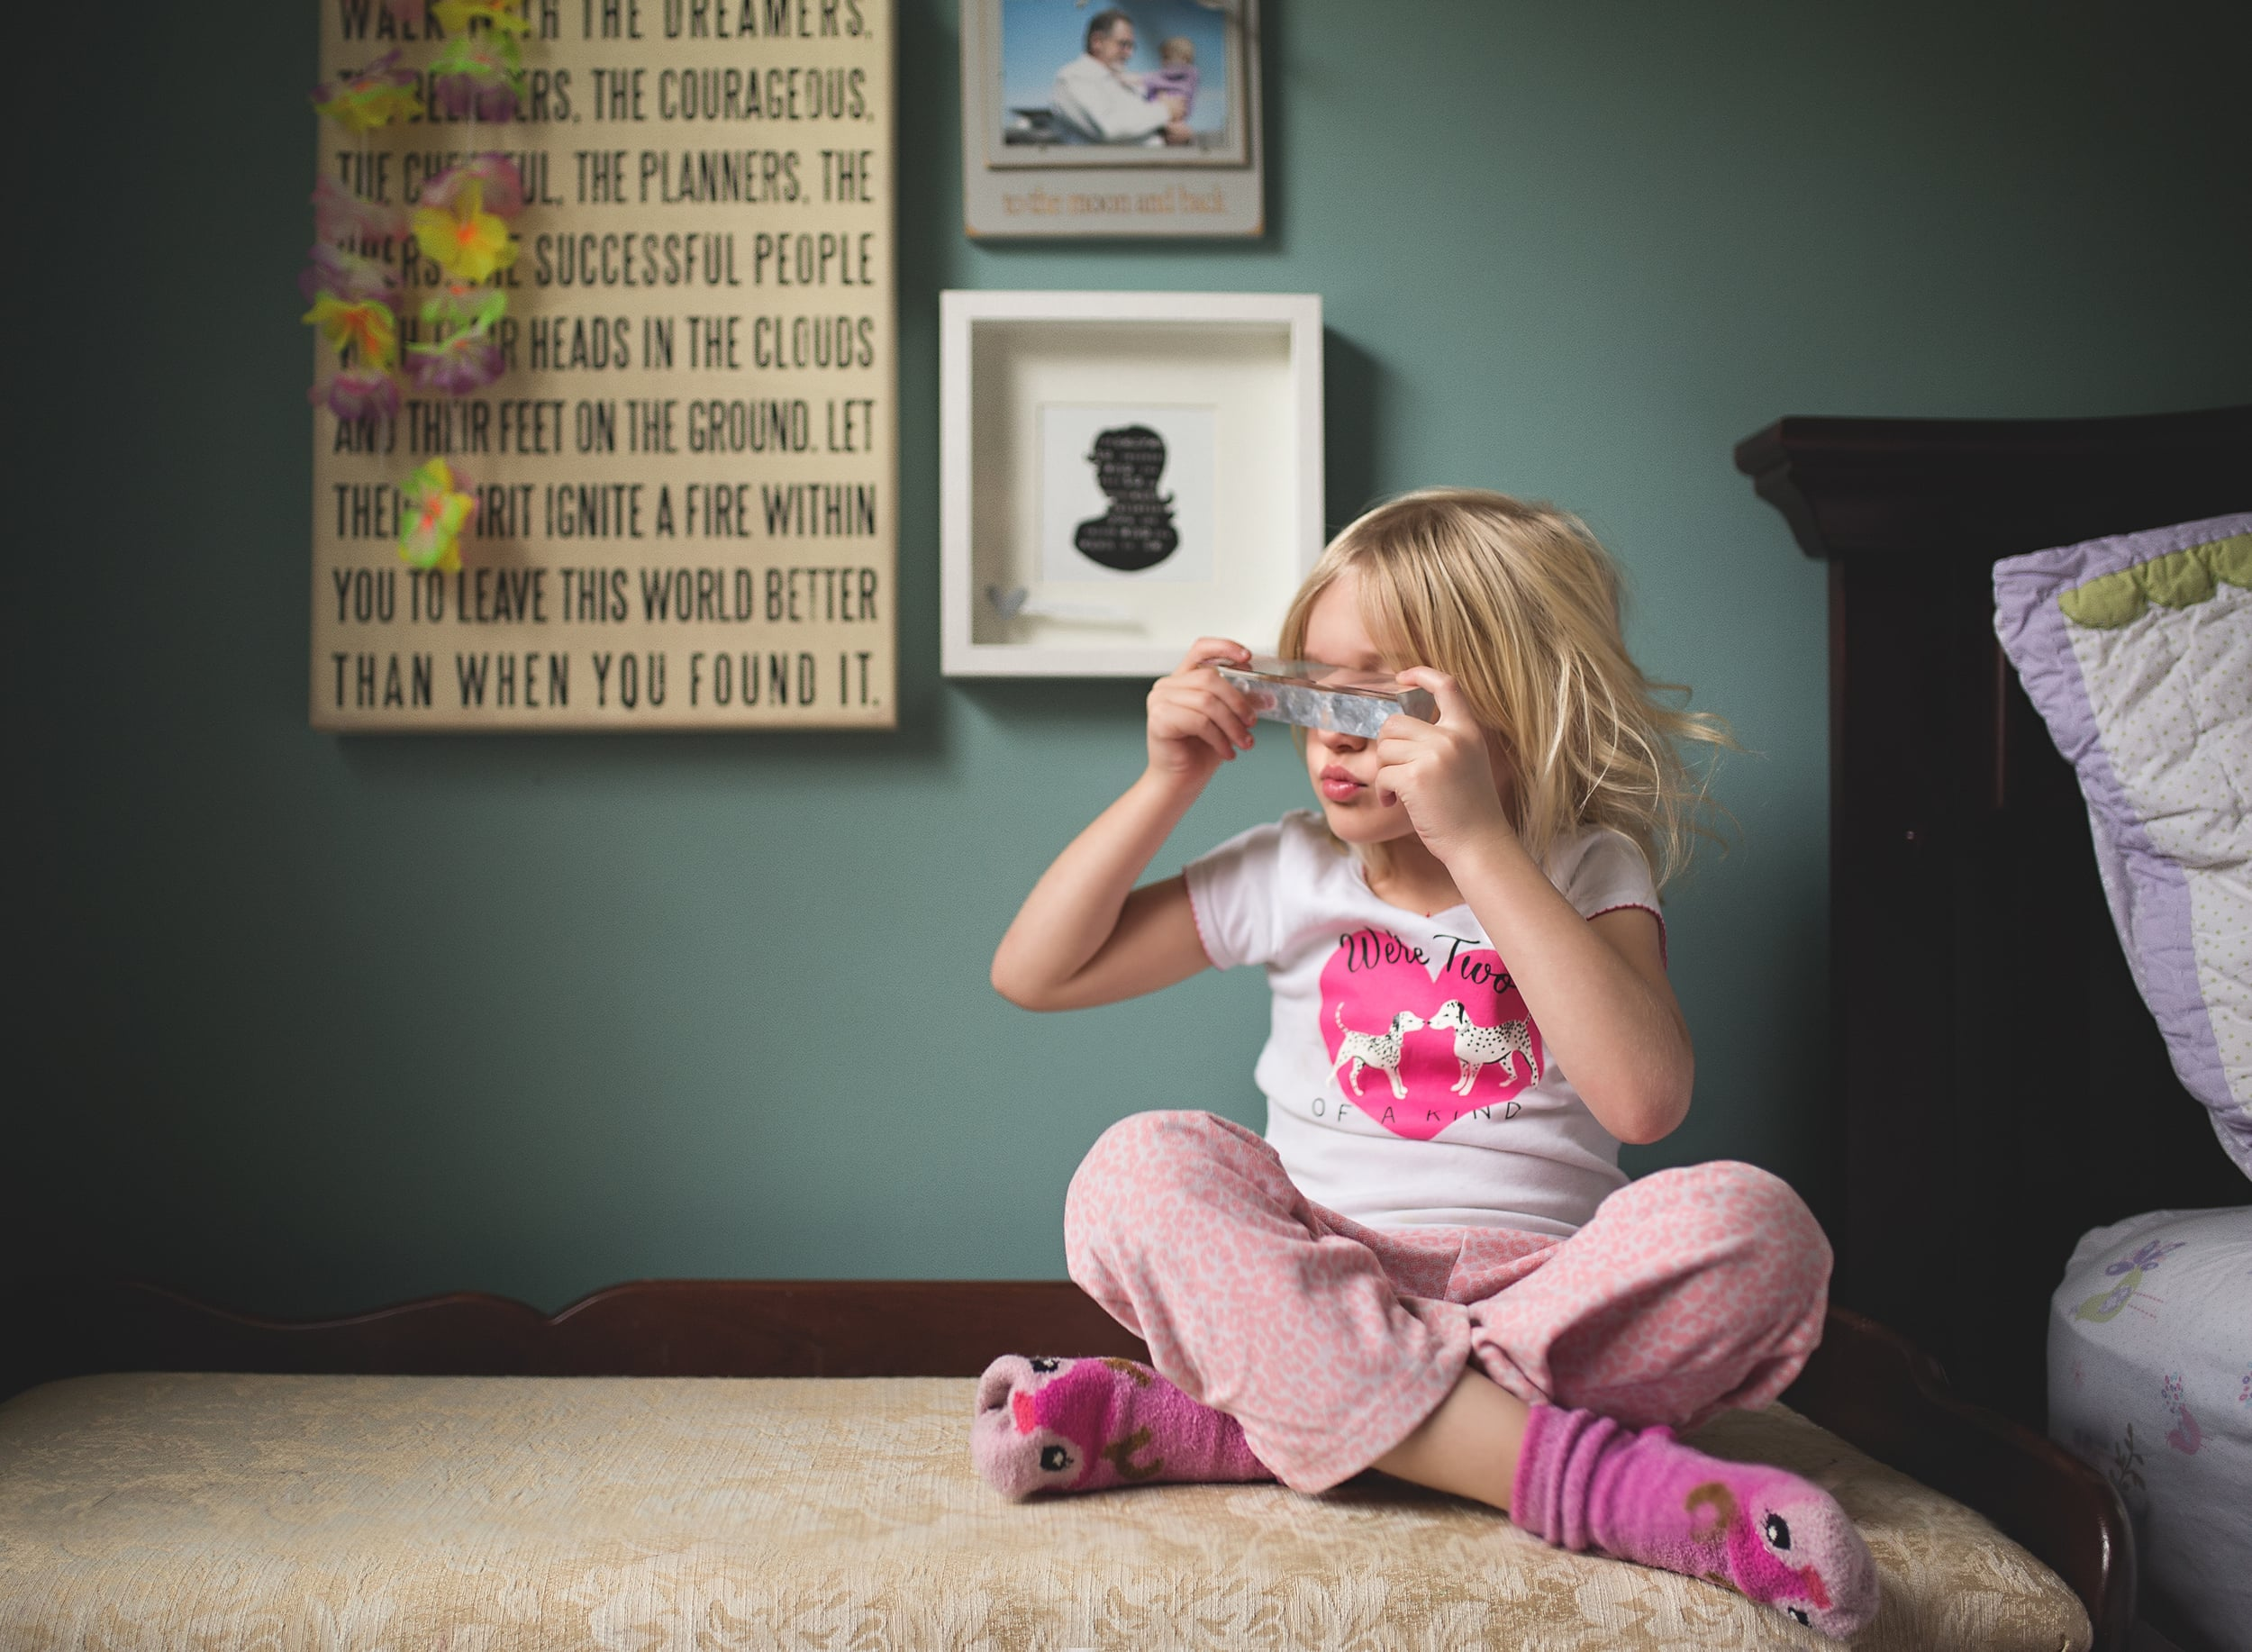 Hello-Olivia-Photography-suffolk-county lifestyle-childrens-photographer-bedroom-prism-window-light-fmaily-child-daughter.jpg